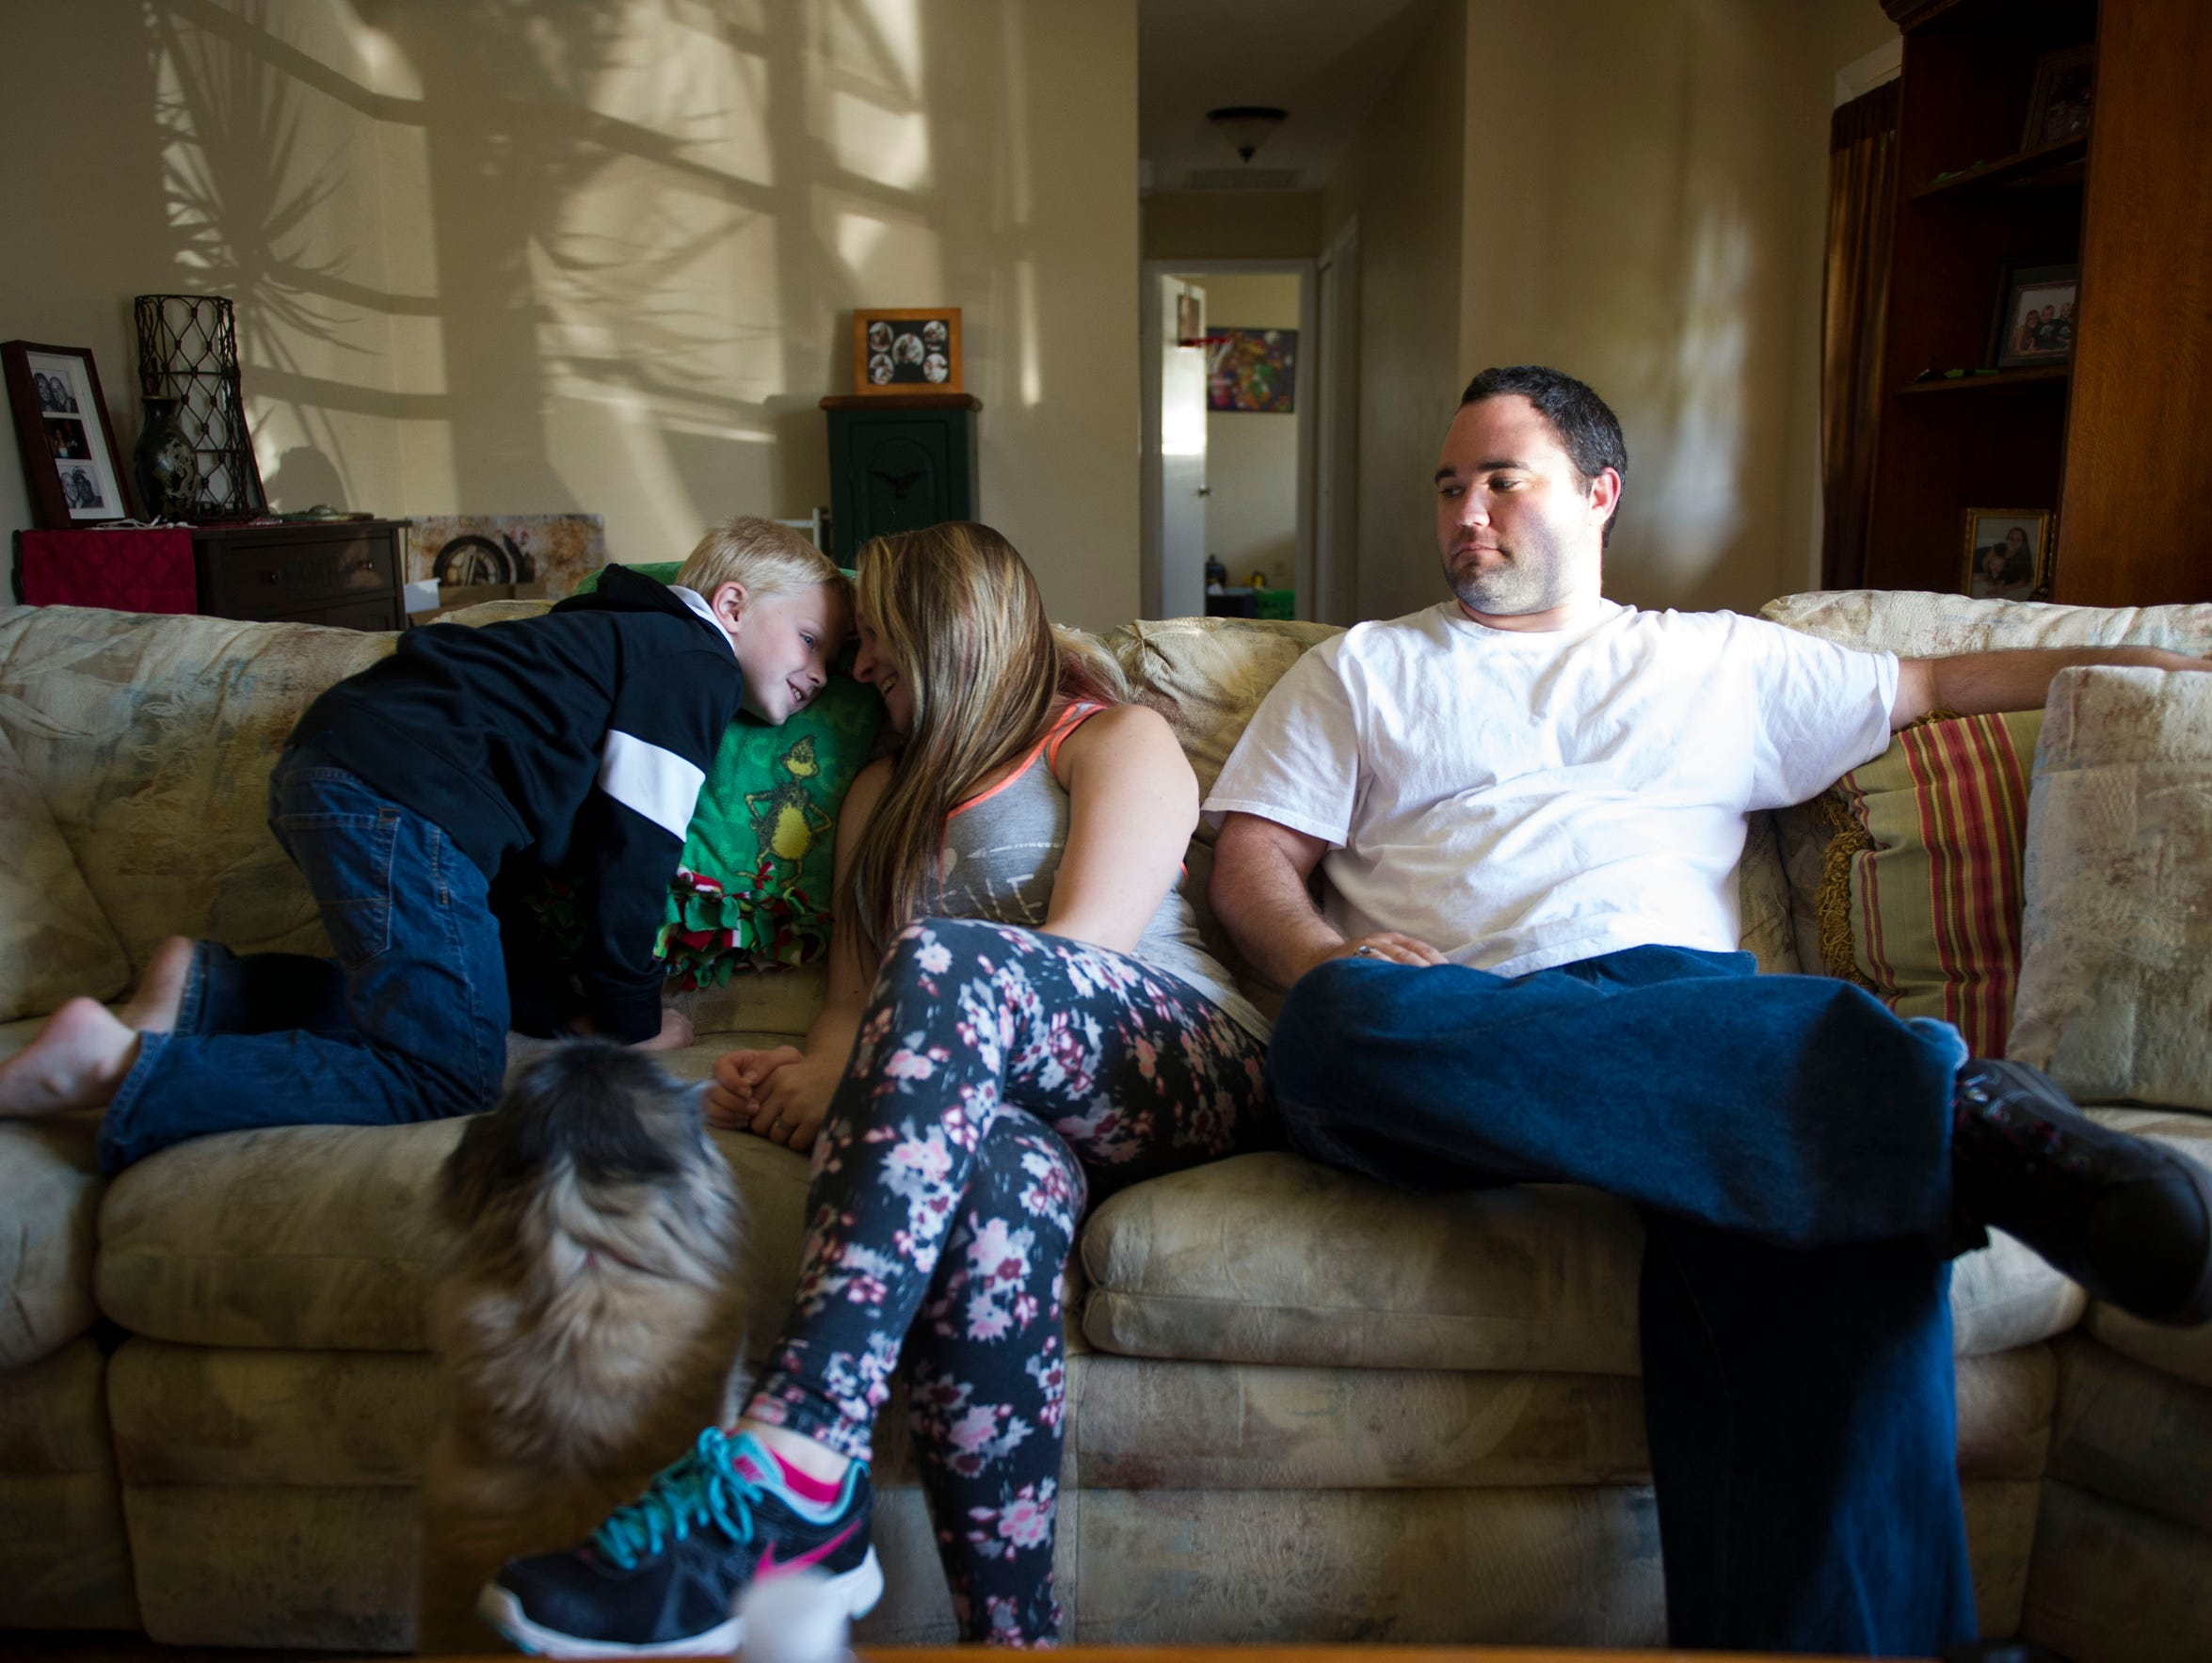 """Although David Merrill isn't the biological father of Landen, 6, (left), Merrill was in his life soon after his future wife, Jen, gave birth to him three days after Merrill's return from Iraq. The Merrills have been working on their marriage and were planning on a date that night, Feb. 25, 2016, but would eventually split up for good in September 2016. At times, they were a happy couple, David said, but """"something always seem really off. It seemed to be this constant up and down cycle."""""""